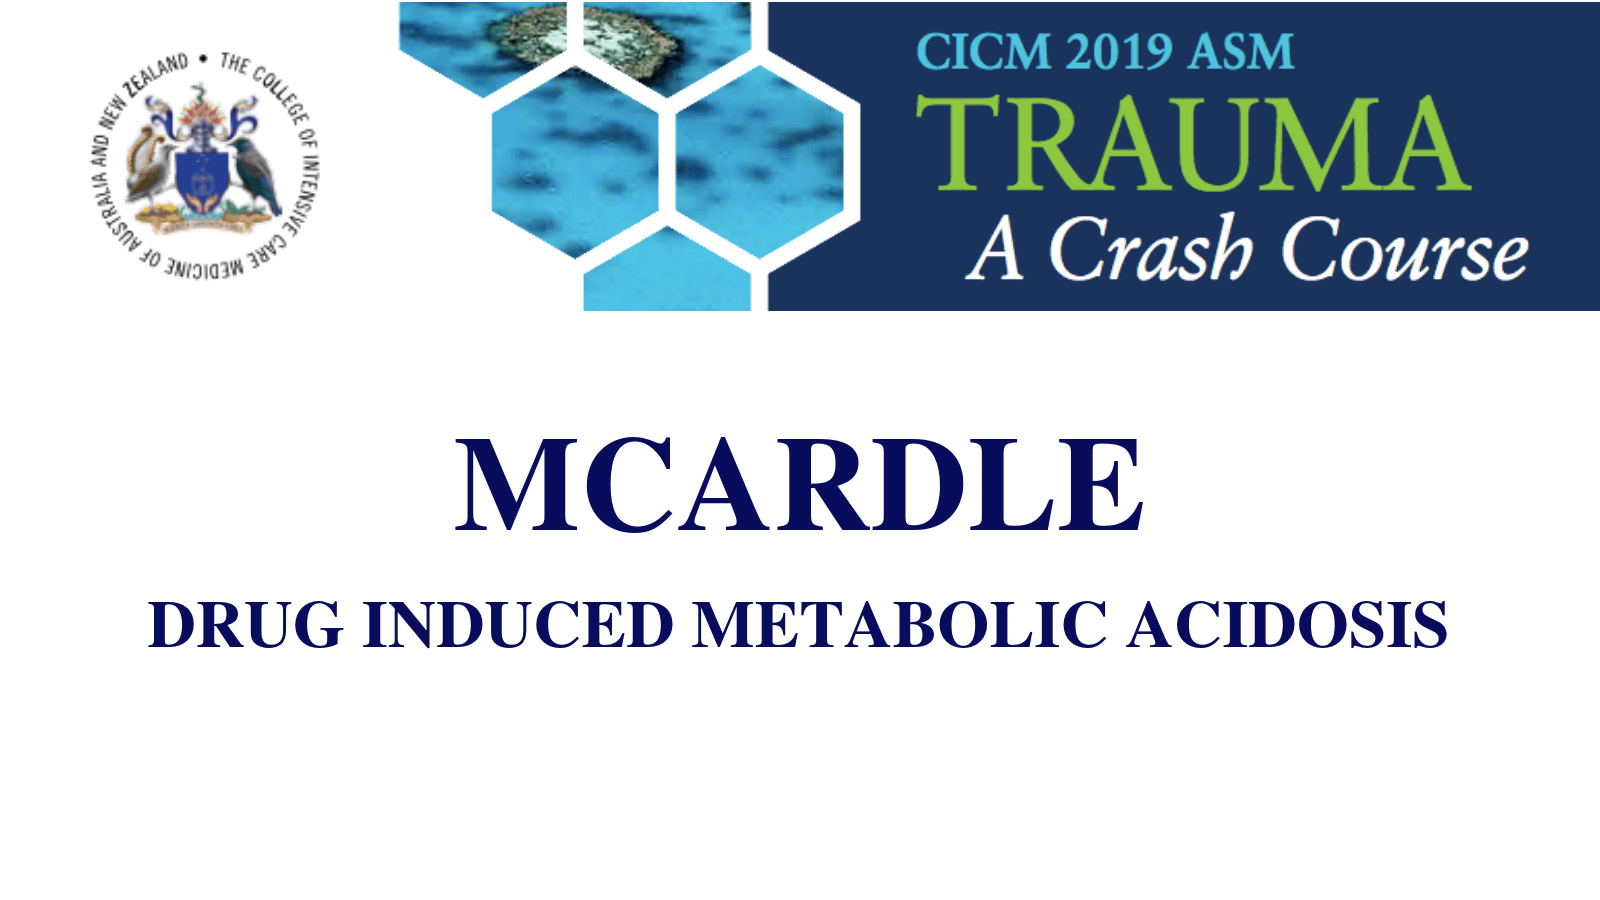 Drug induced metabolic acidosis